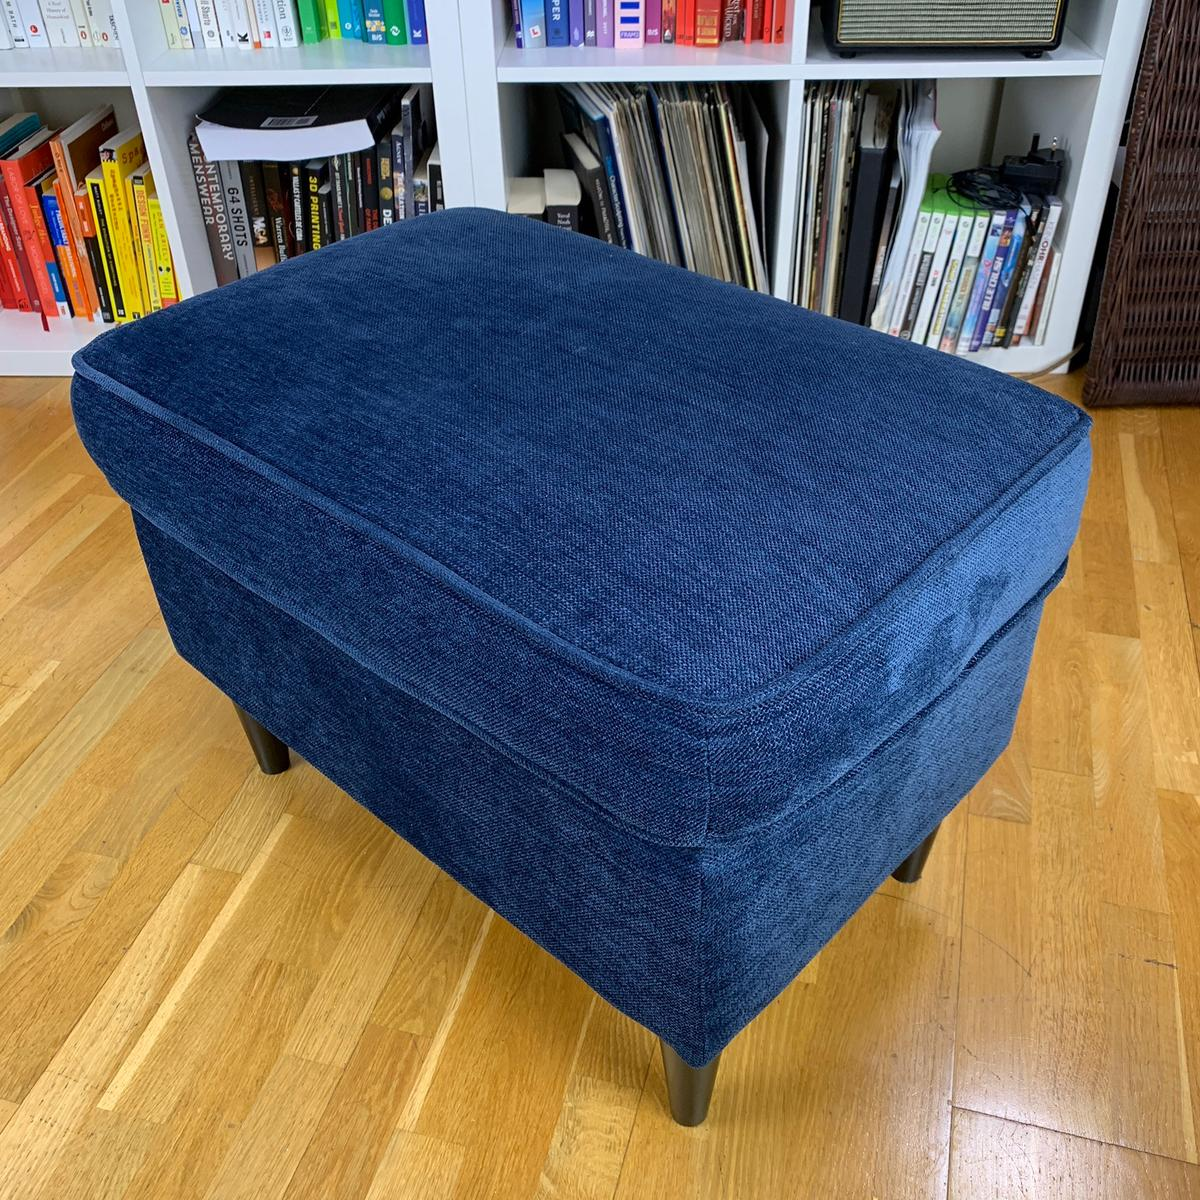 Terrific Ikea Strandmon Footstool In N1 Islington For 30 00 For Sale Theyellowbook Wood Chair Design Ideas Theyellowbookinfo